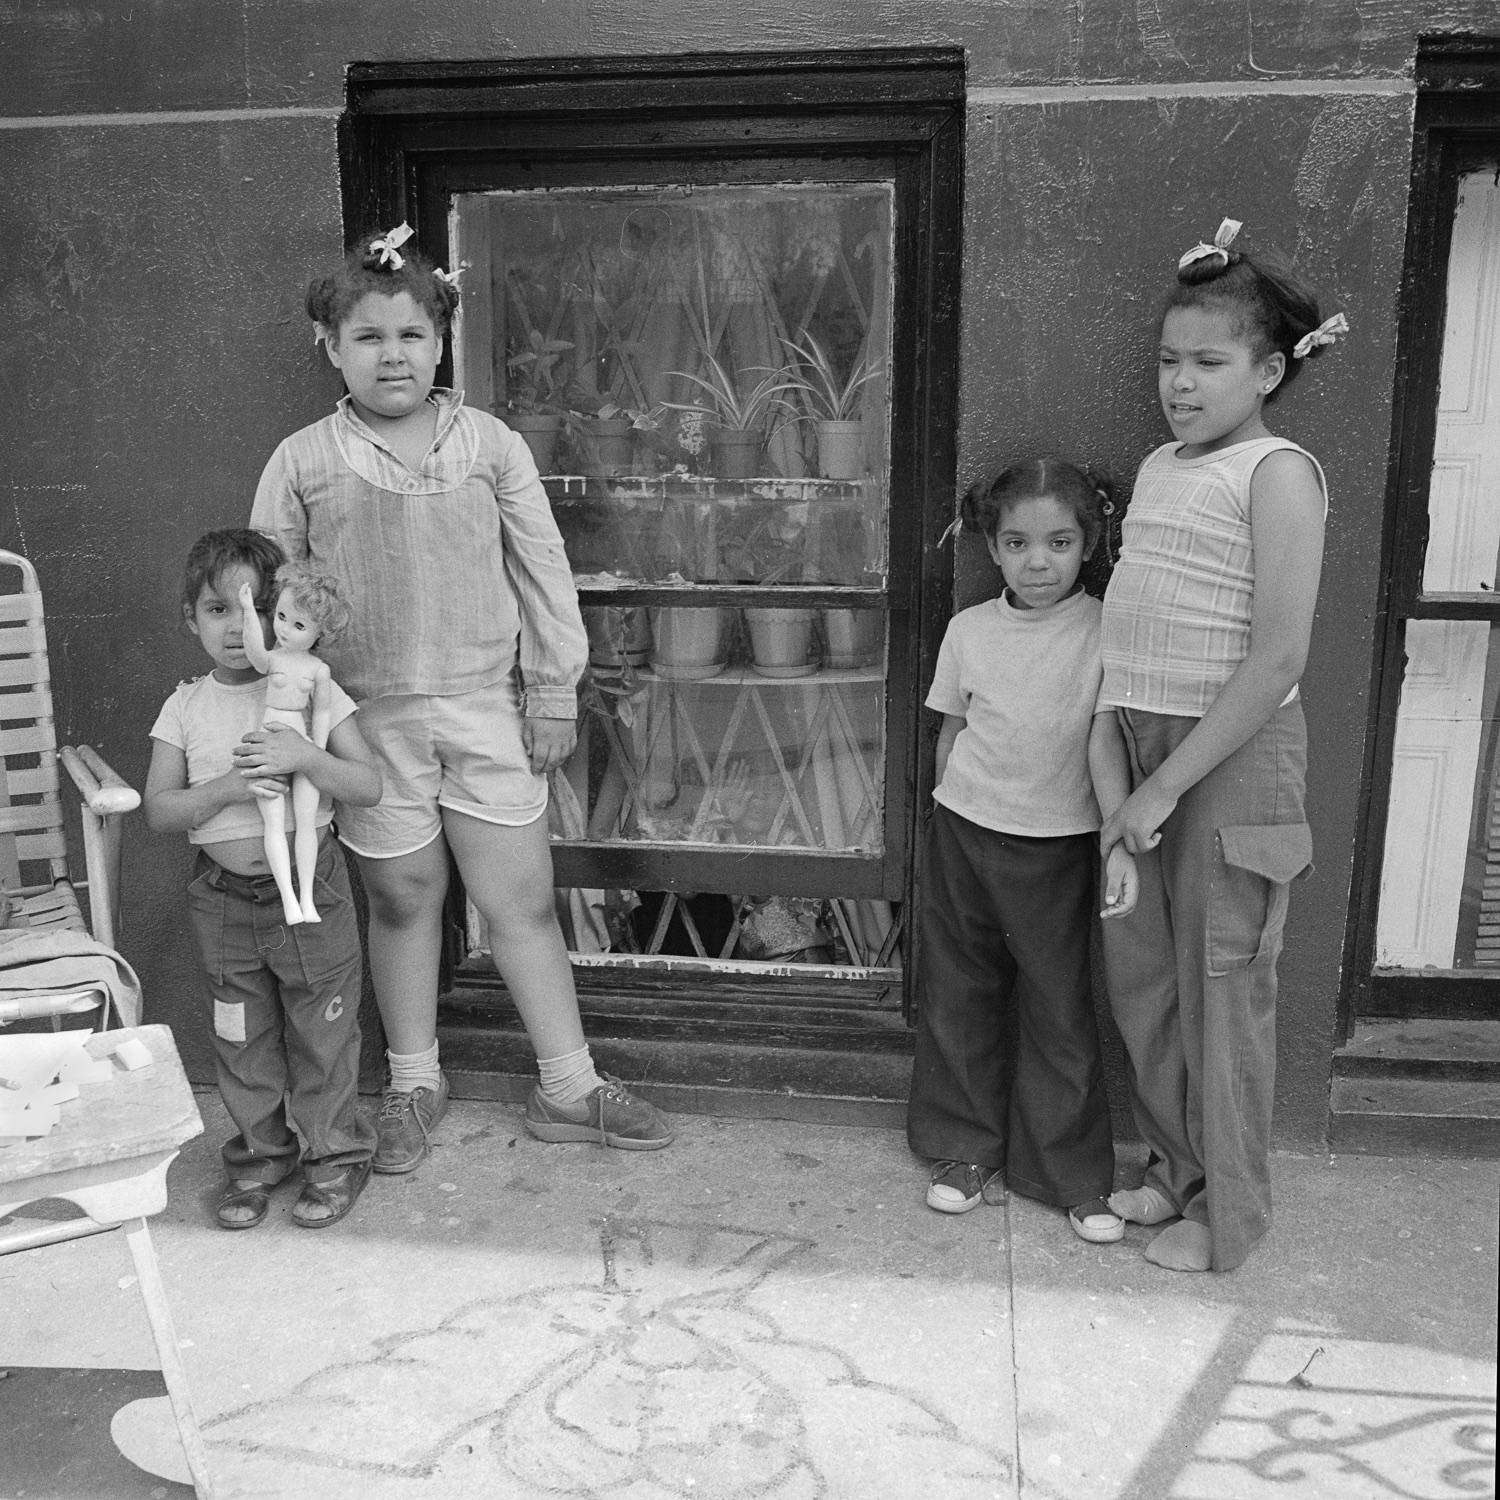 Four kids and a doll in front of a window NY, NY June 1978